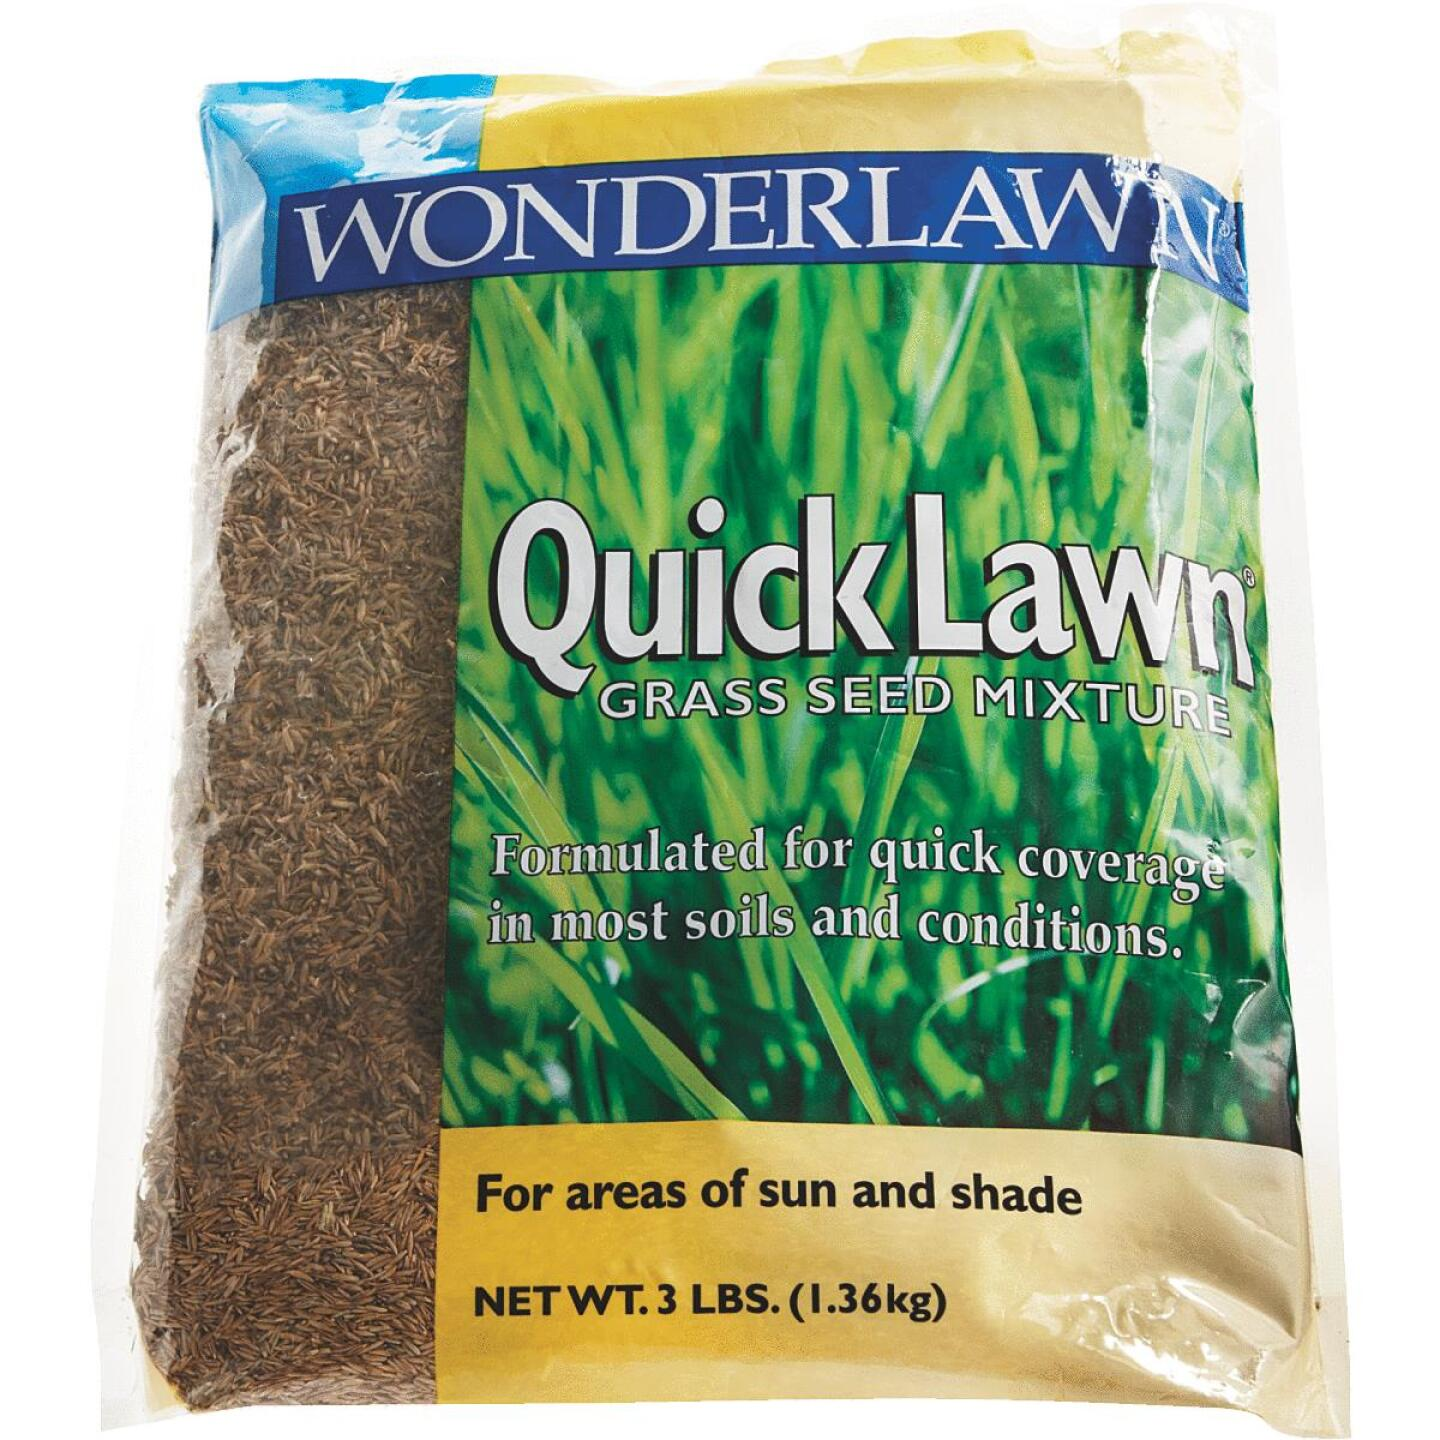 Wonderlawn Quick Lawn 3 Lb. 900 Sq. Ft. Coverage Annual & Perennial Ryegrass Grass Seed Image 2